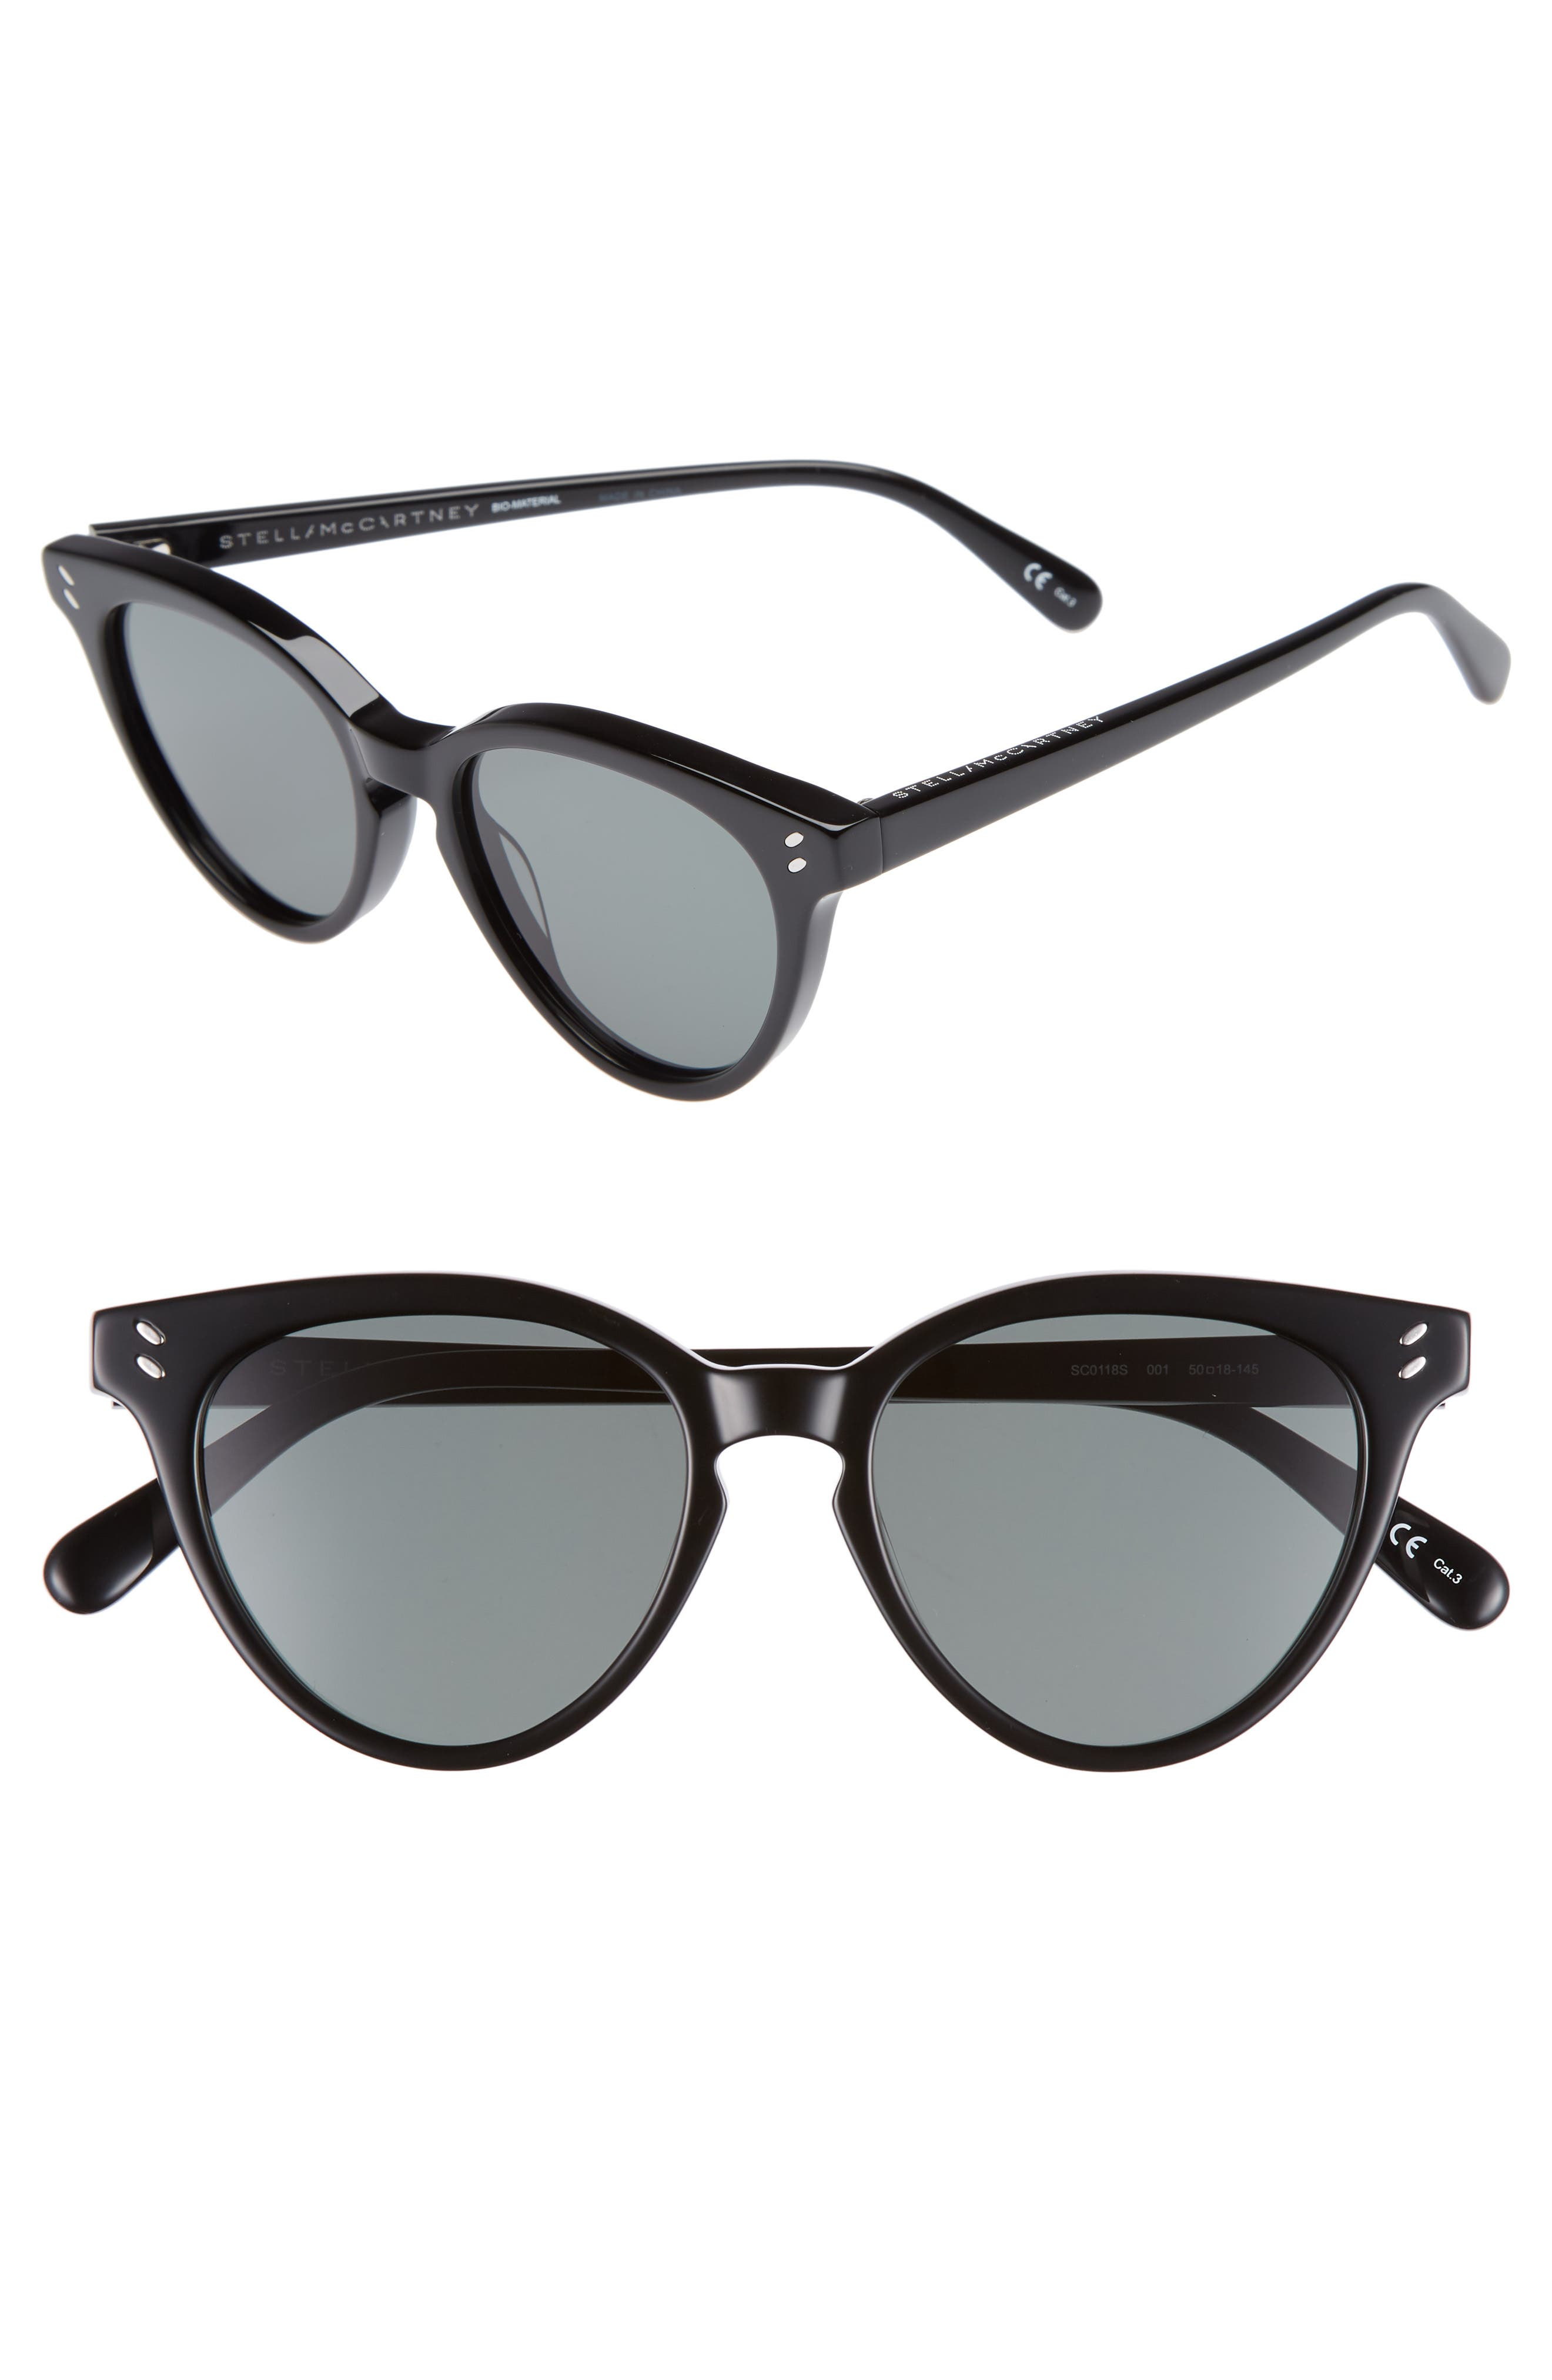 50mm Round Sunglasses,                             Main thumbnail 1, color,                             BLACK